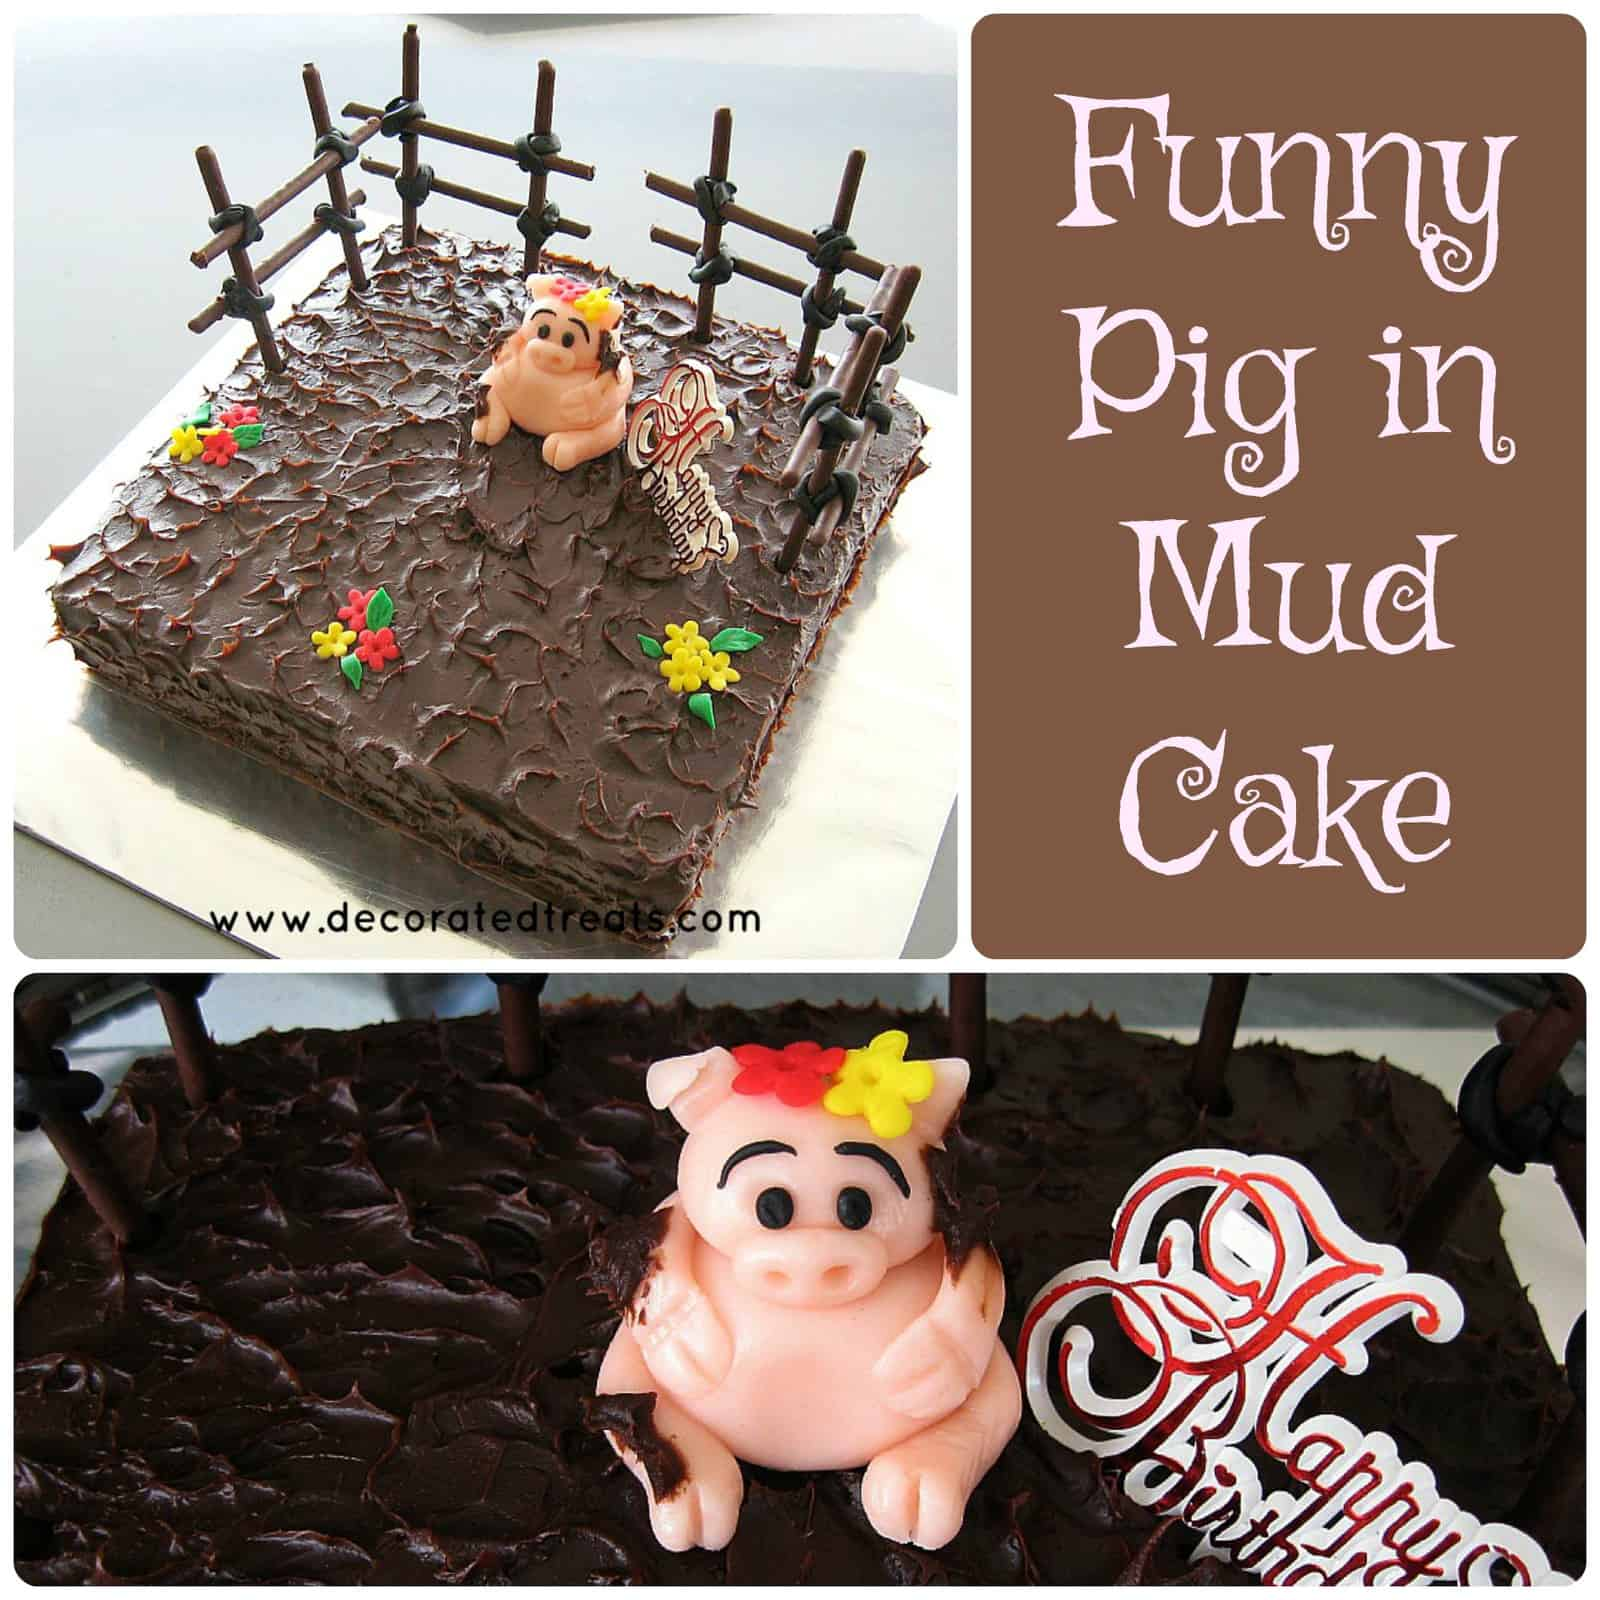 A square cake covered in ganache with a fondant pig topper and cookie sticks fencing